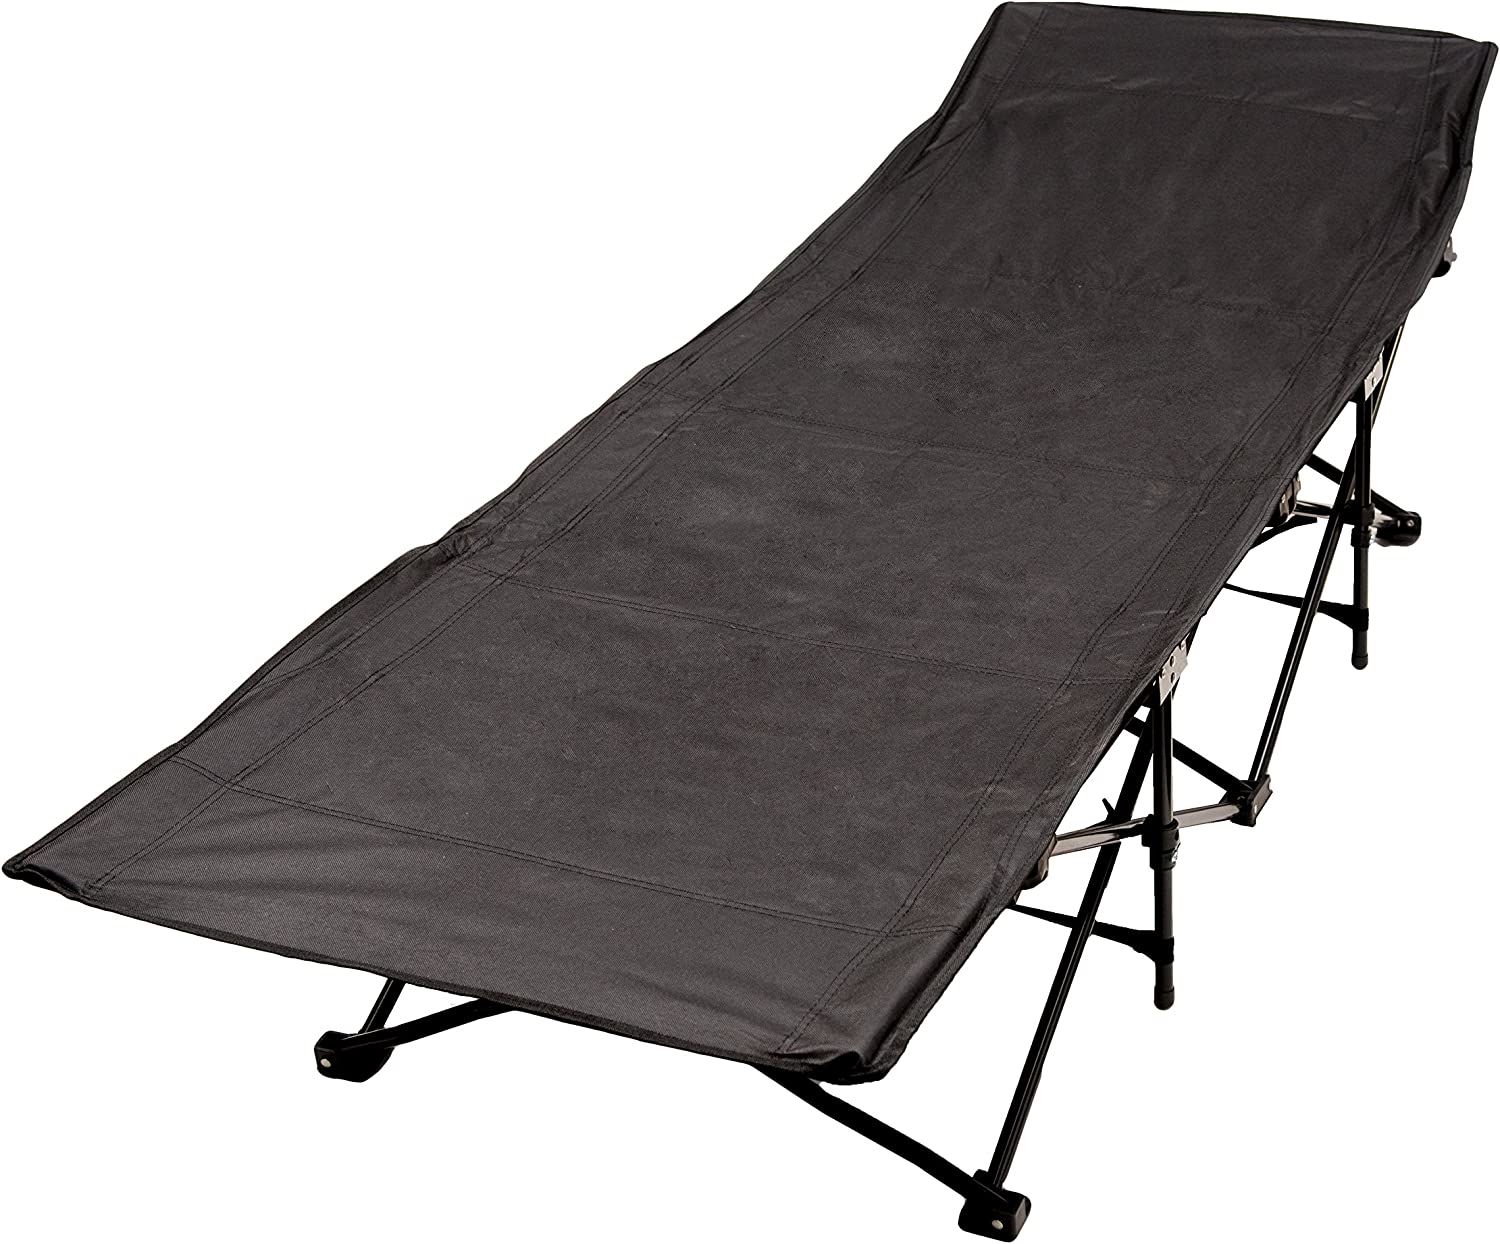 World Famous Sports Collapsible Camping Hunting Cot, Black